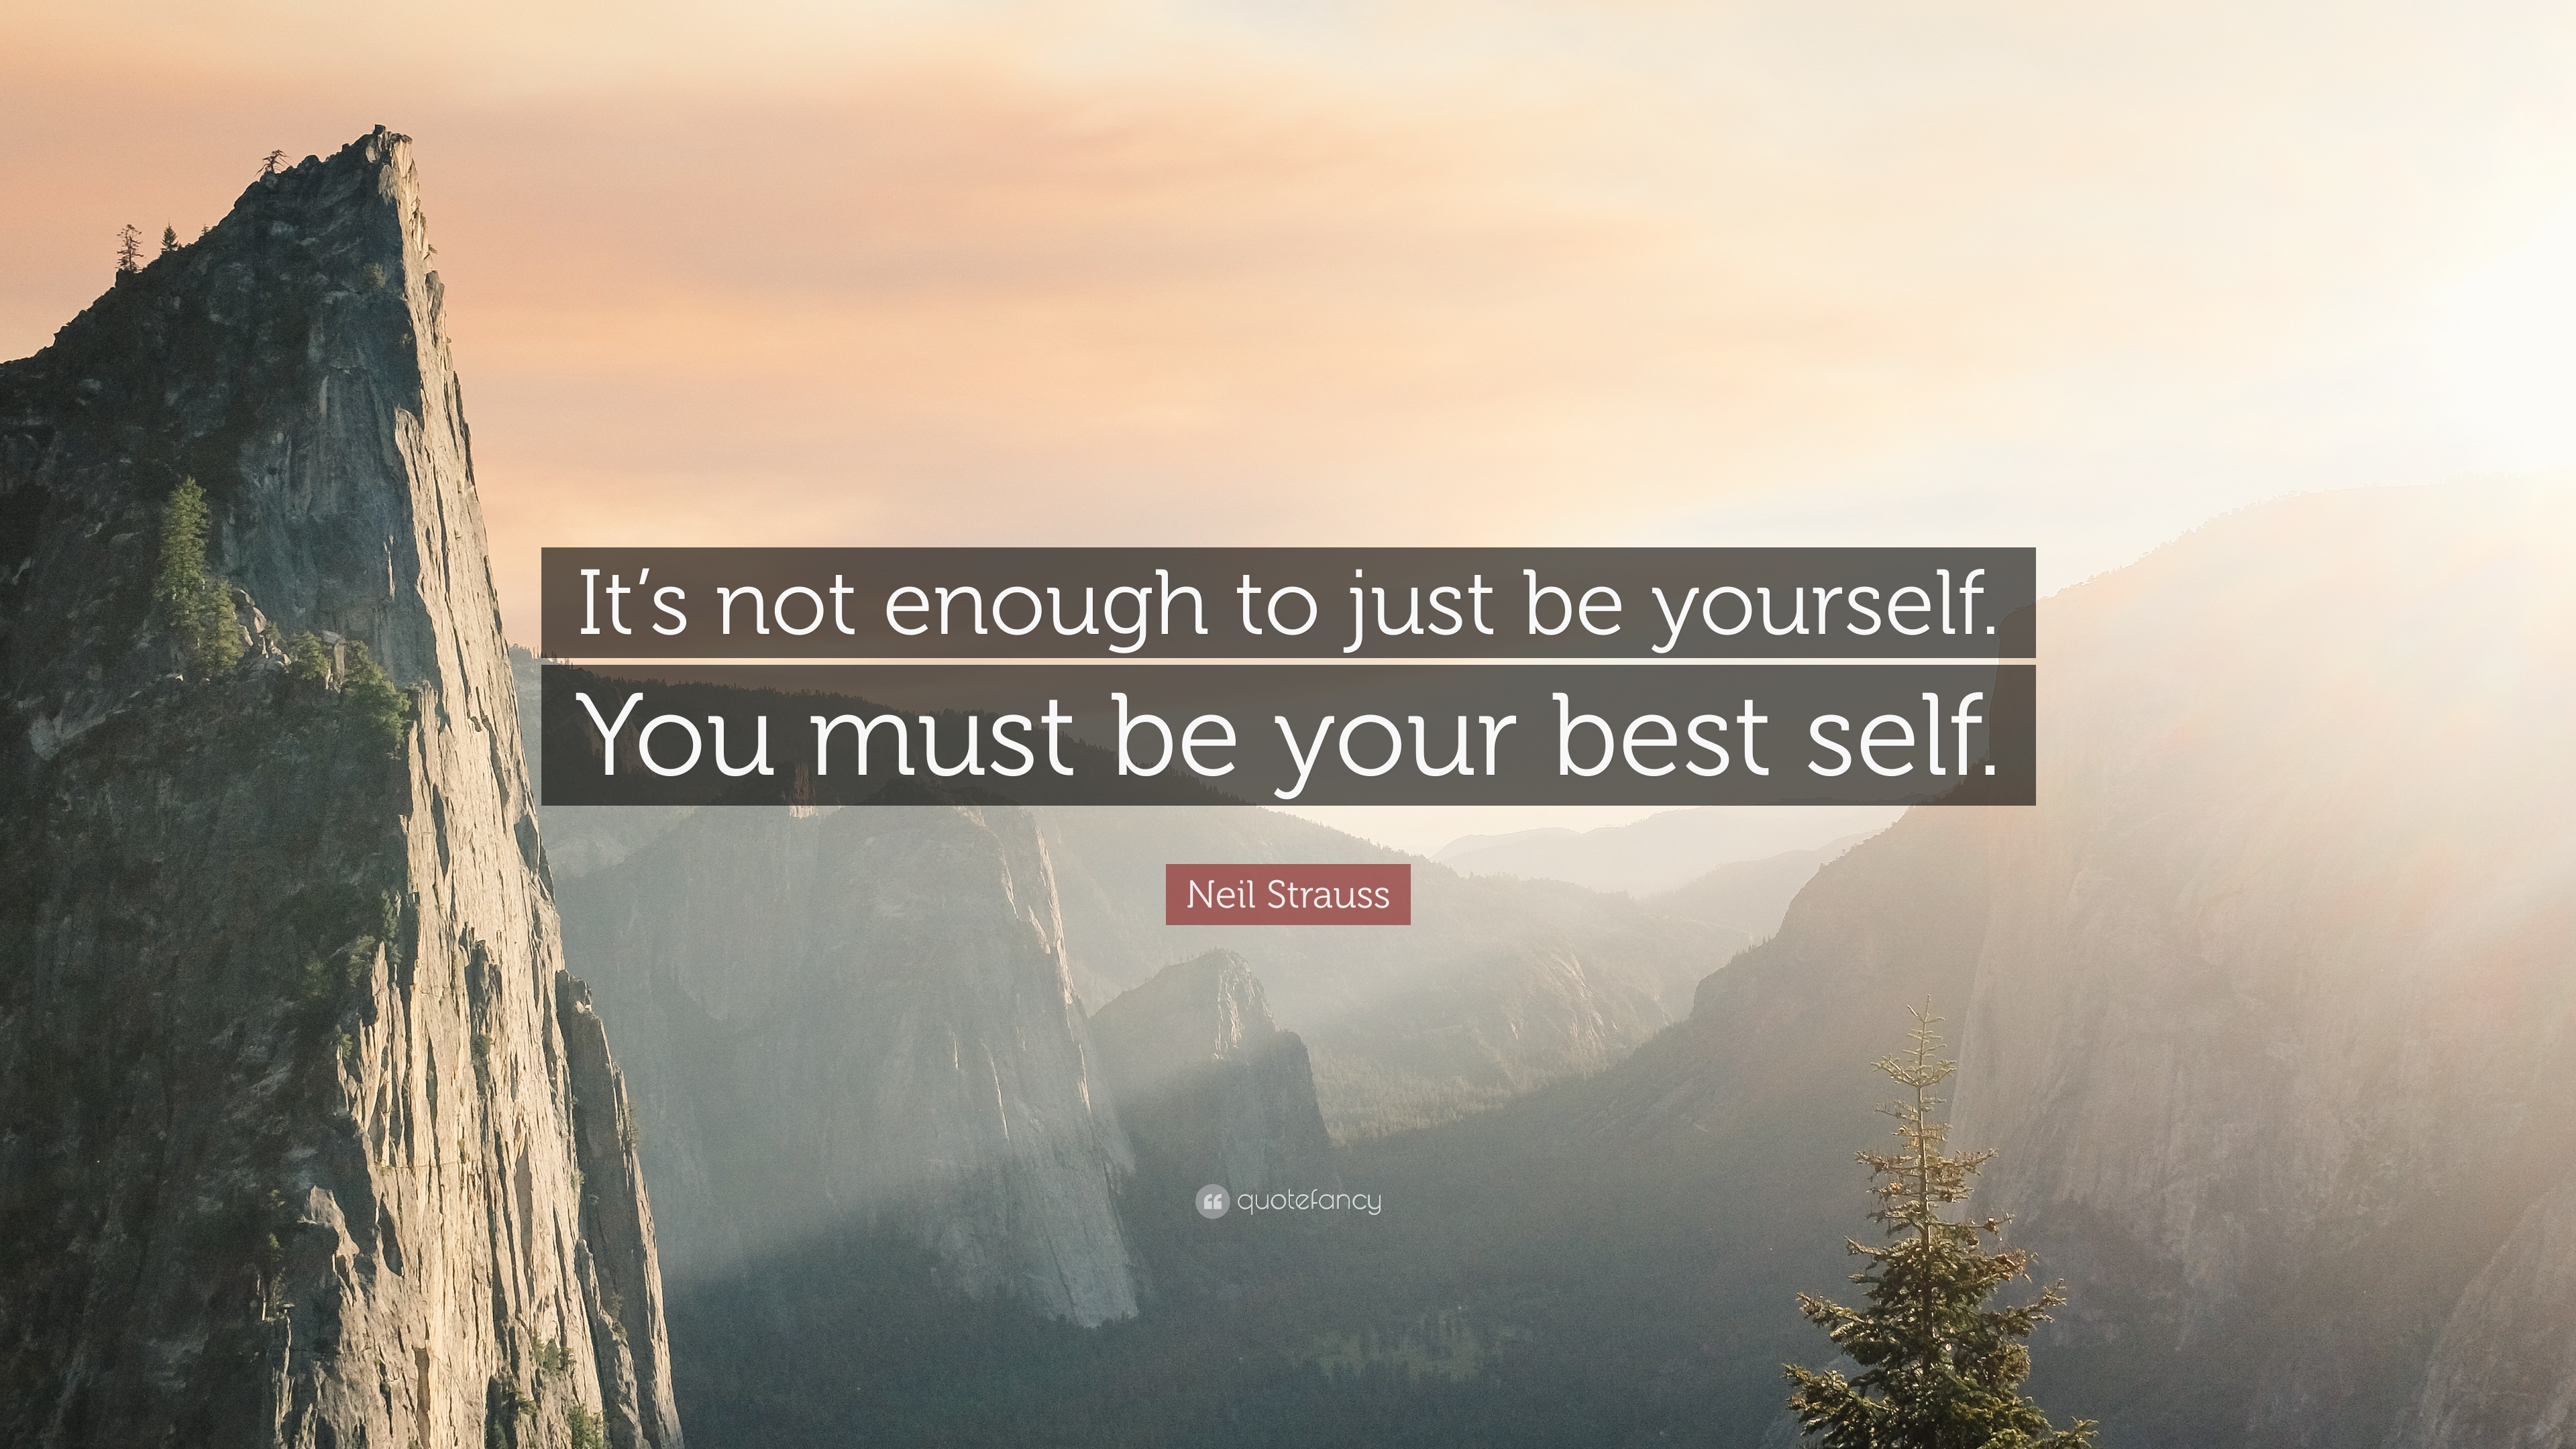 neil strauss quote its not enough to just be yourself you must be